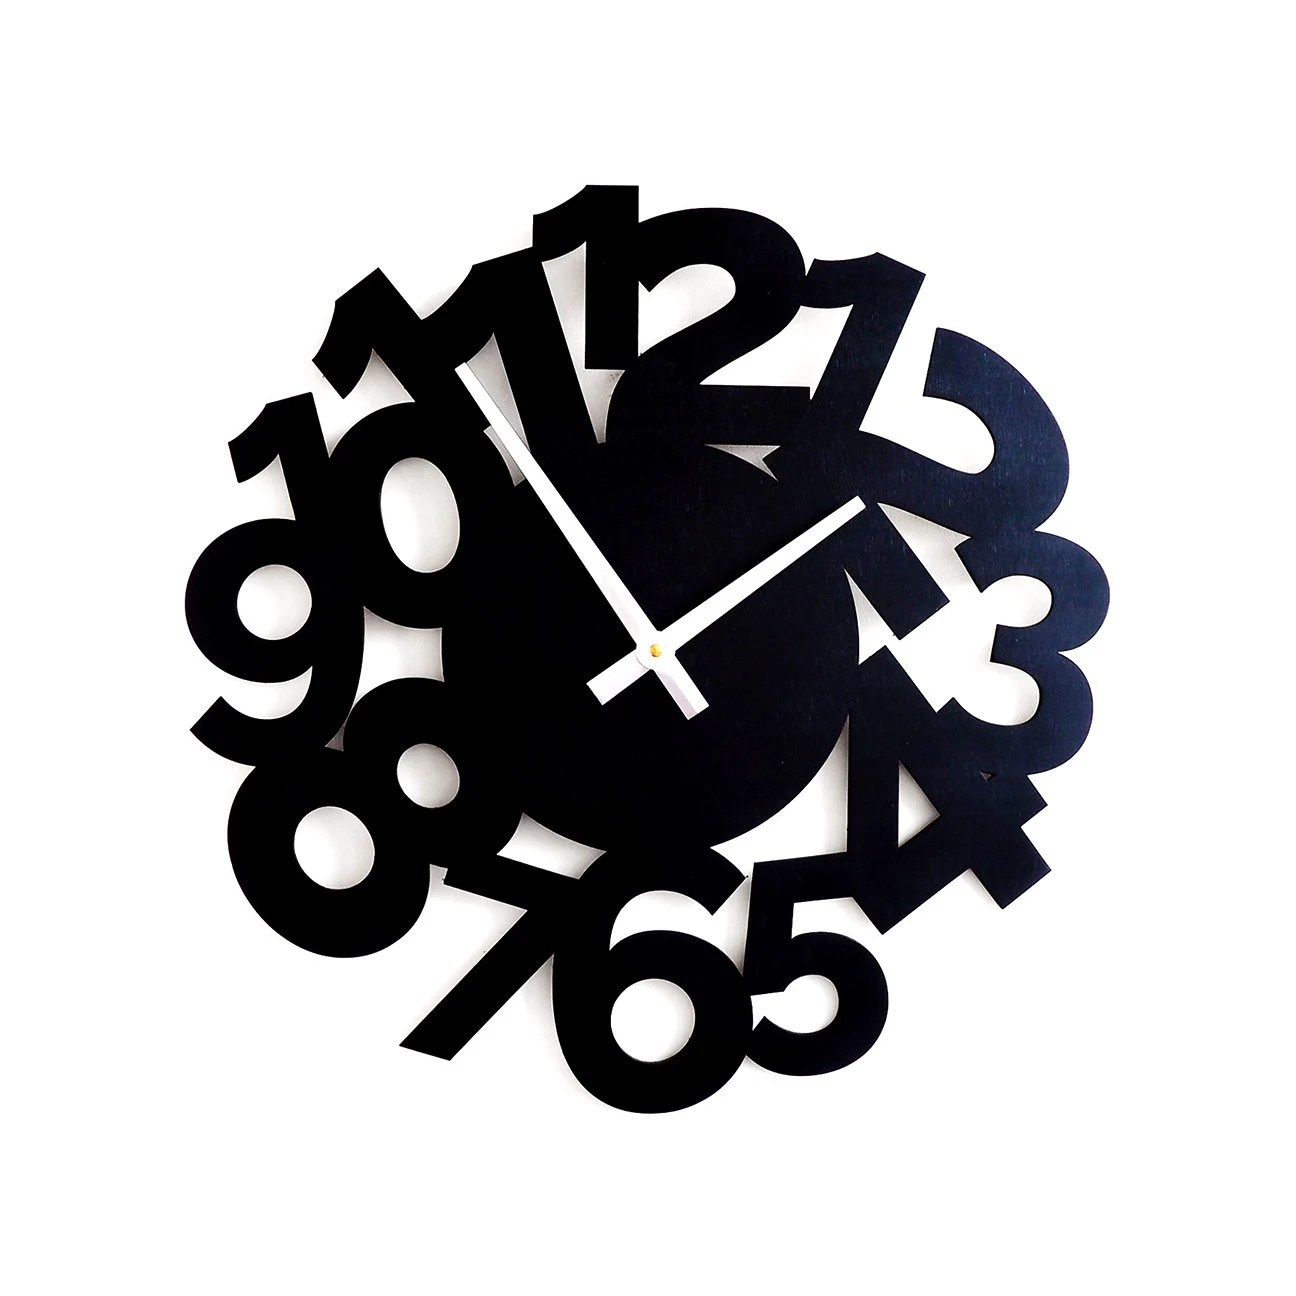 Black Wall Clock Black Wall Clock Large Wall Clock Clocks For Wall Clock For Kid Clock With Numbers Clock Cut Wood